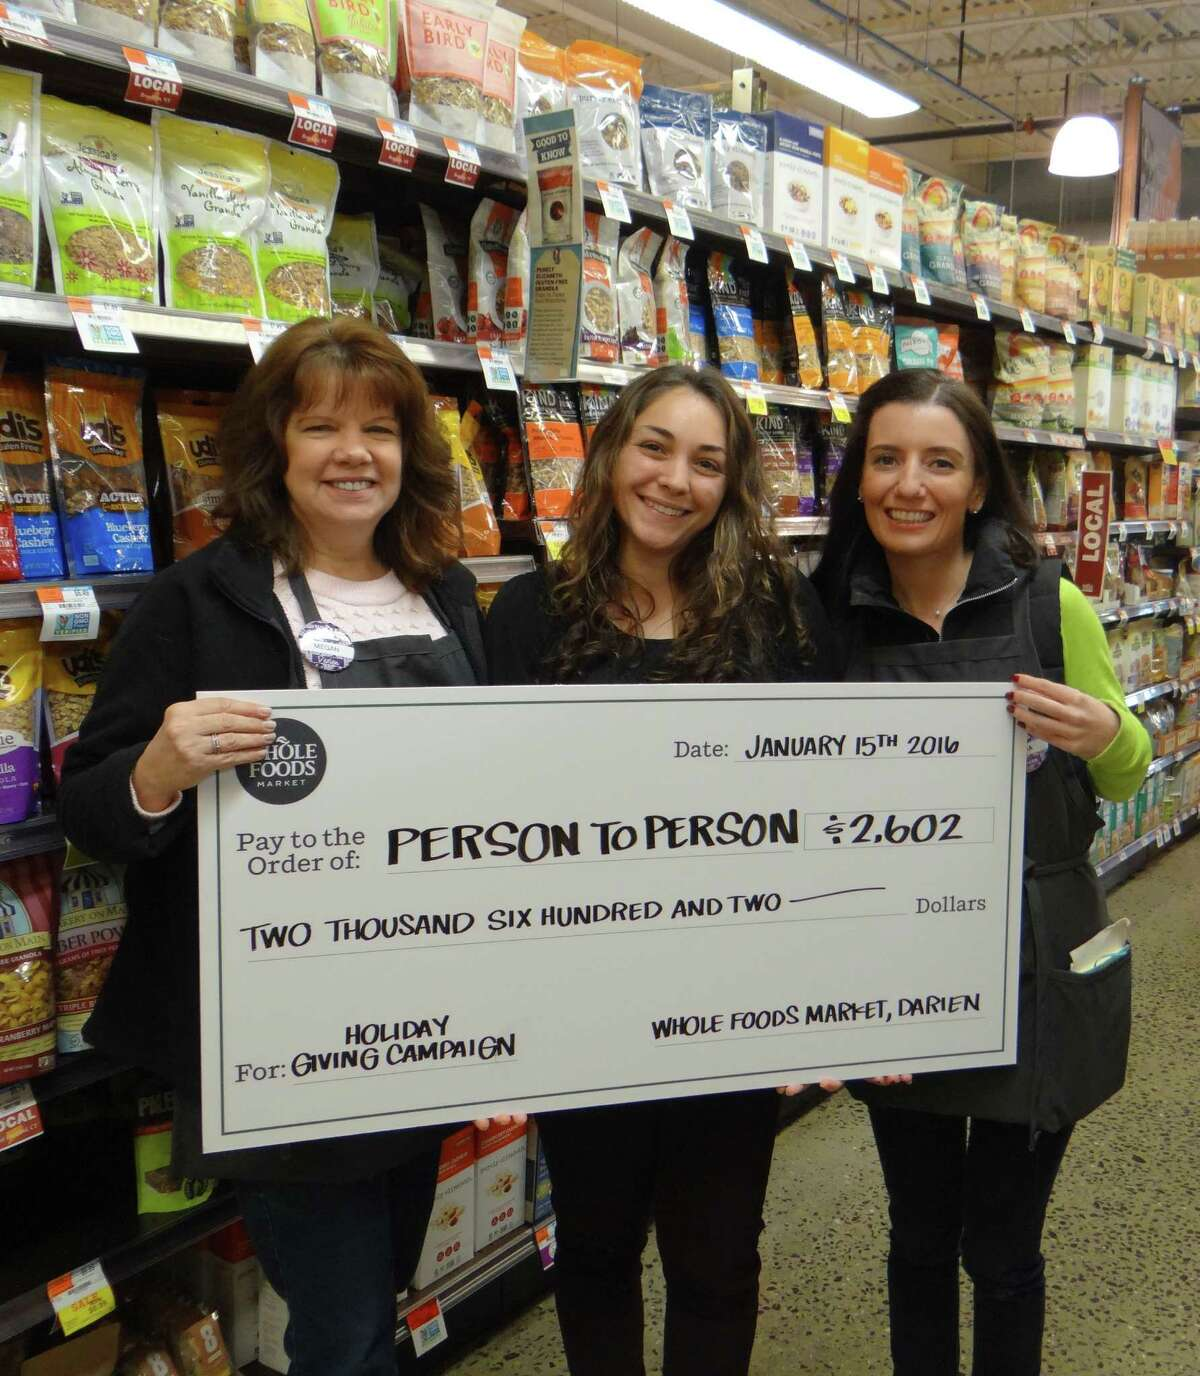 Person-to-Person Darien Site Manager Sophie Neumann (middle) accepts $2,602 check from Whole Foods Market Store Team Leader Megan Neisser (left) and Marketing Team Leader Lucia Albero (right), at Whole Foods Darien's Holiday Giving Campaign.